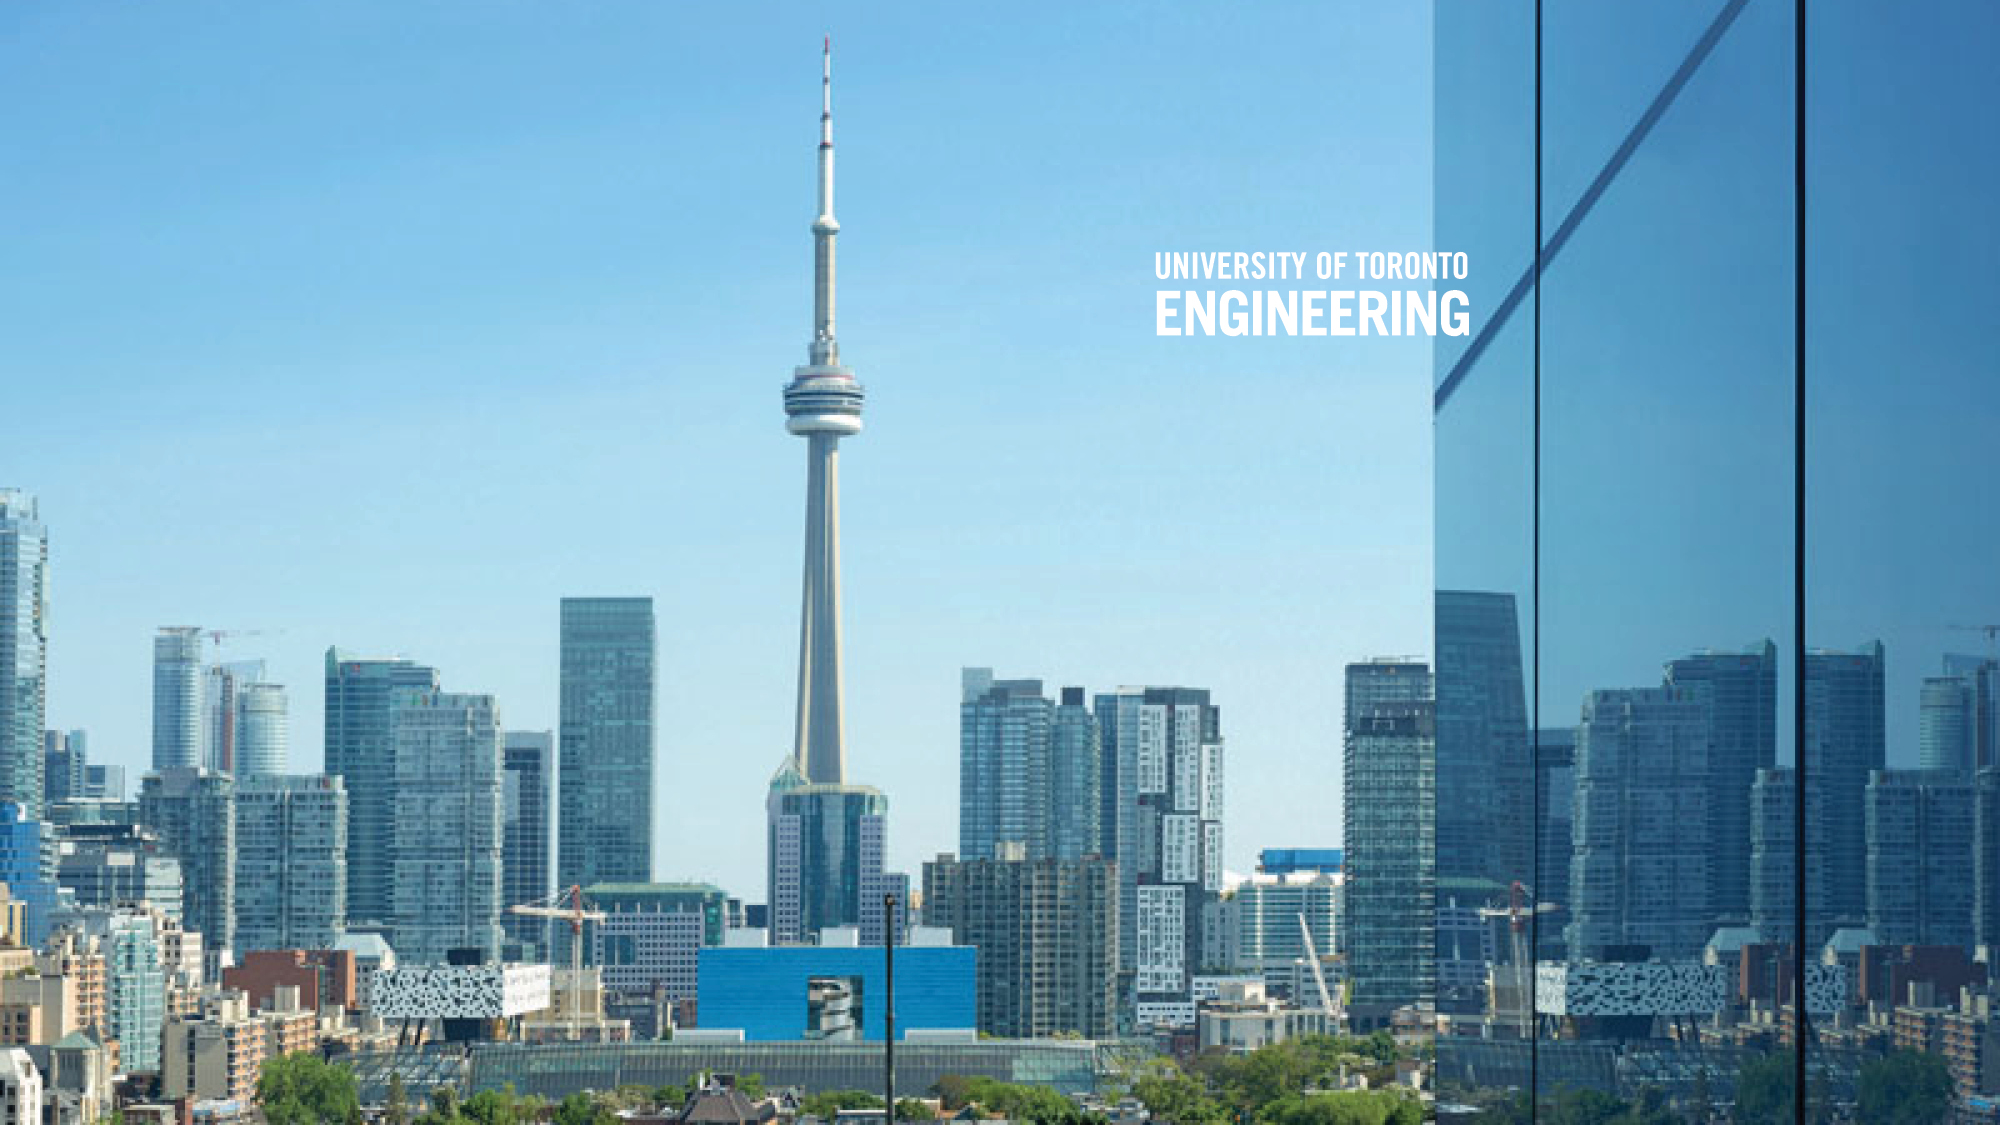 U of T Engineering – CN Tower Background